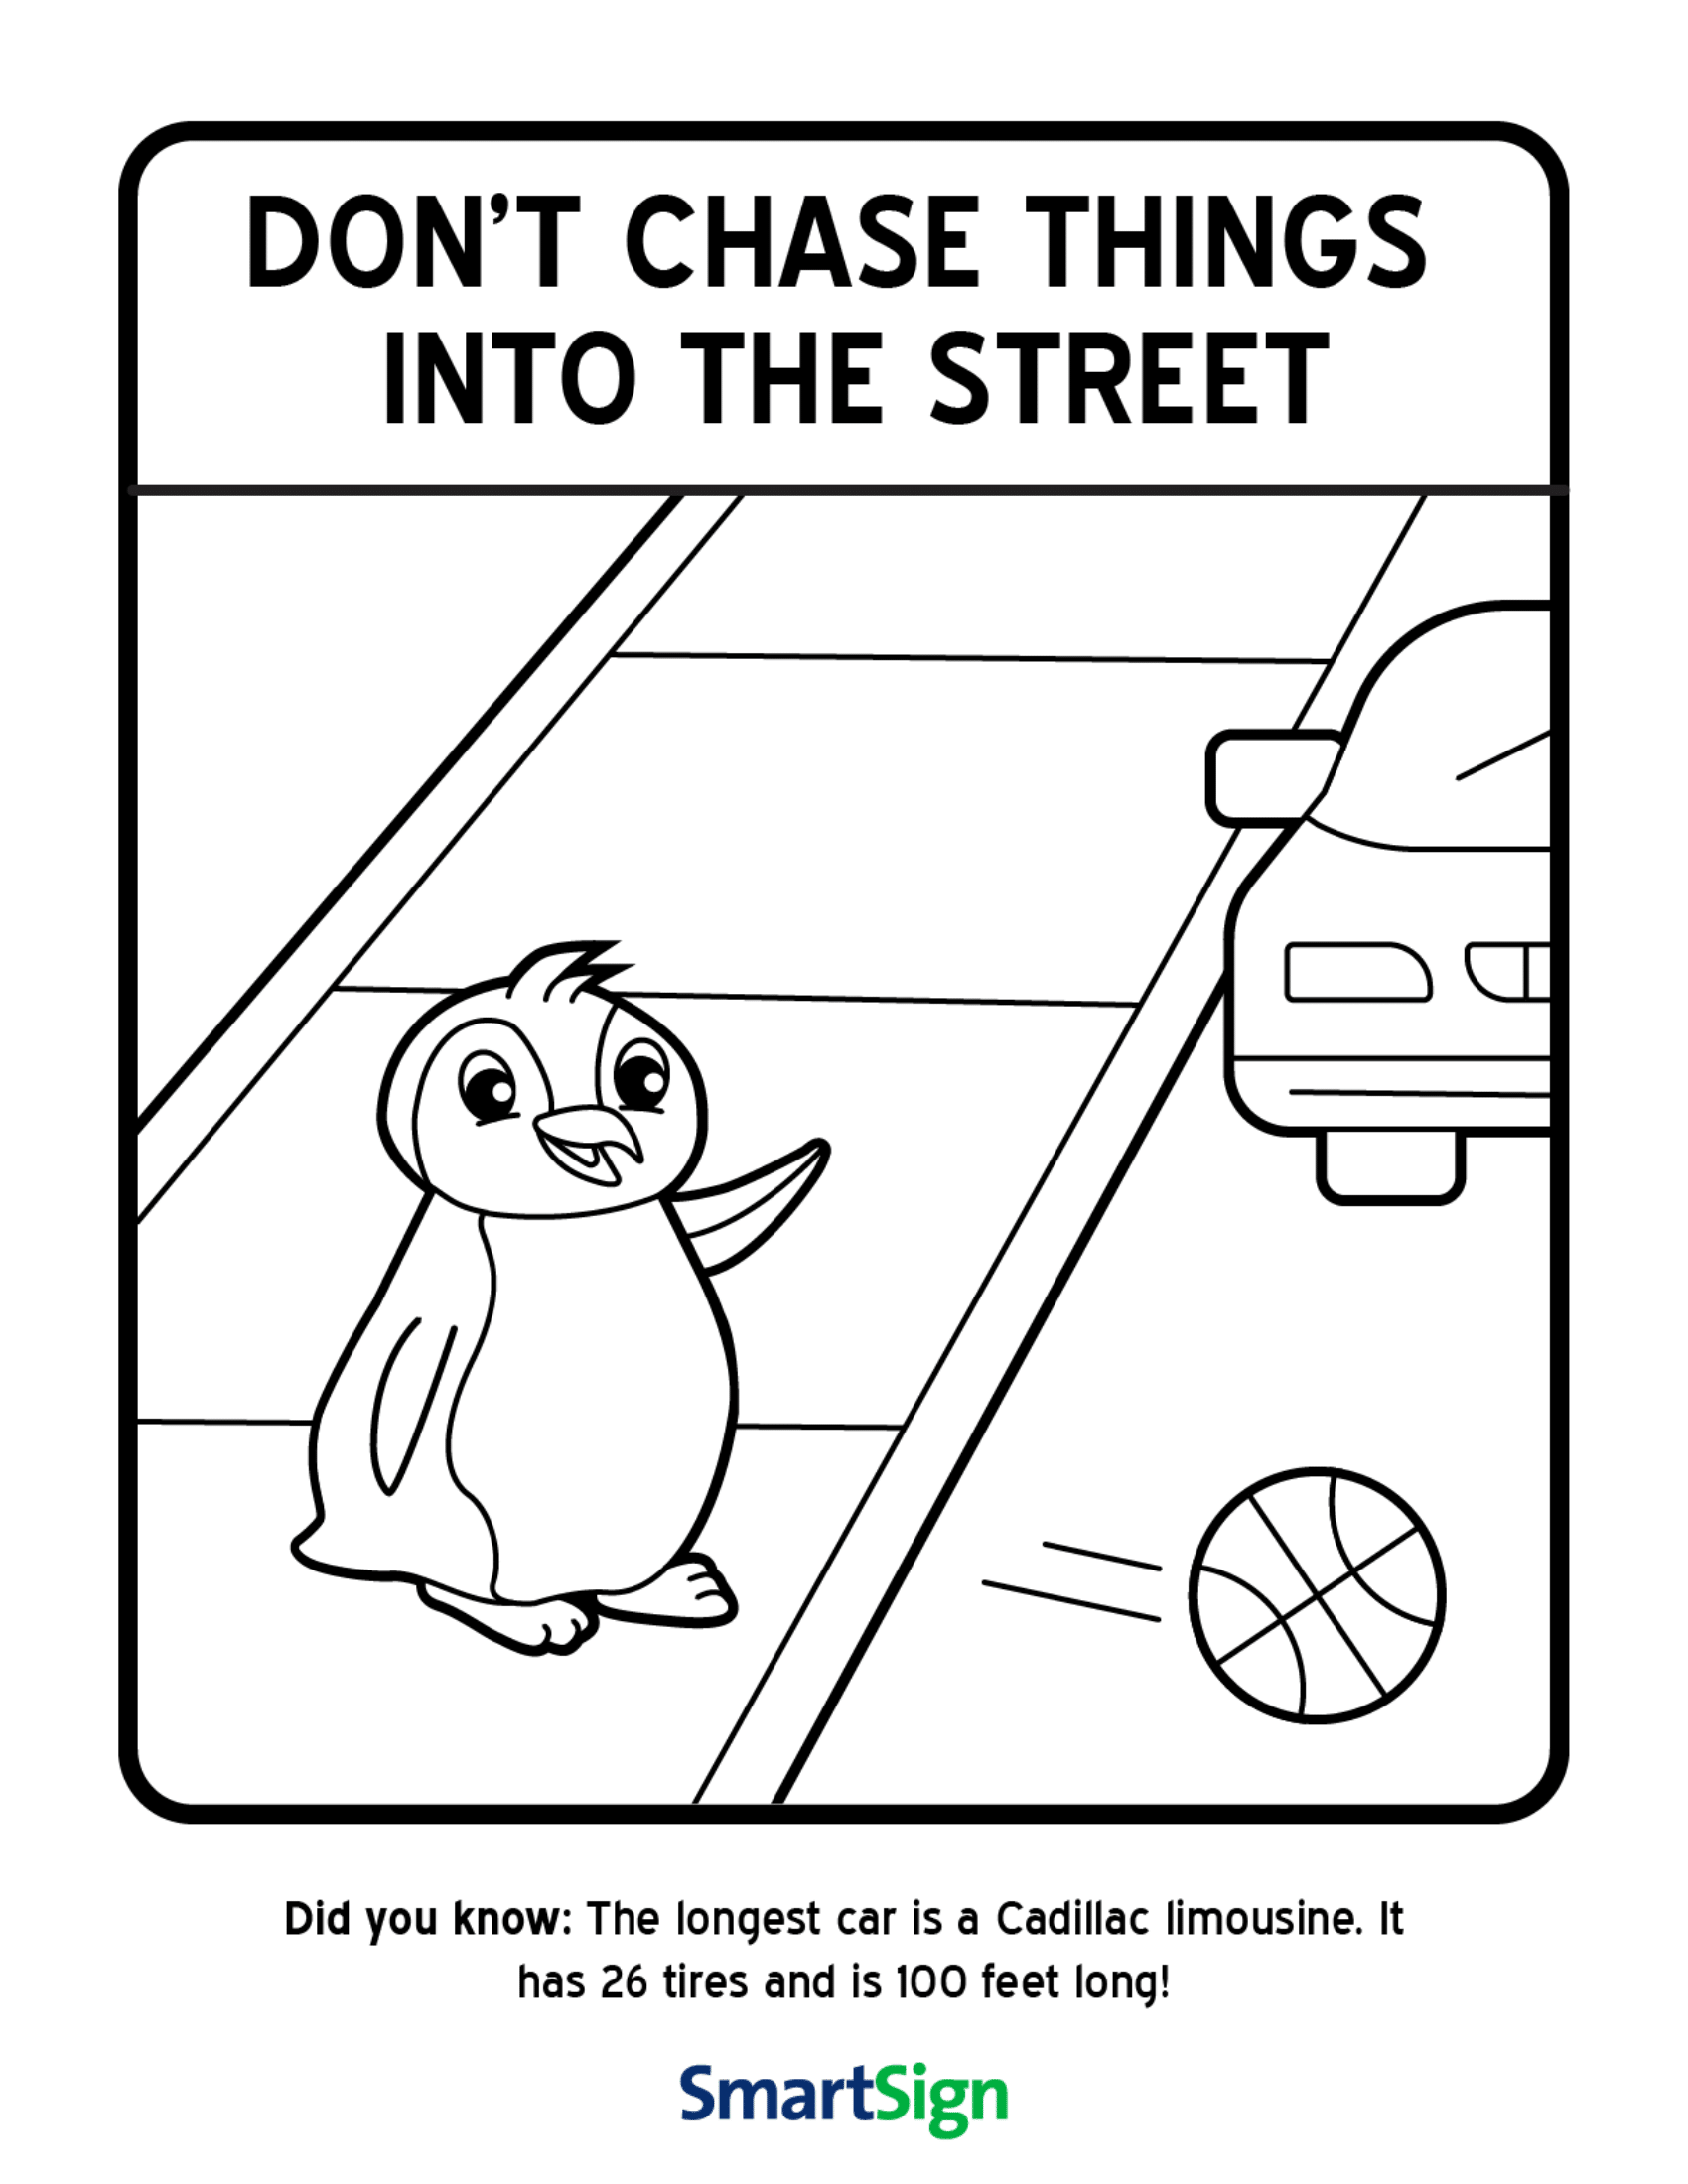 safety signs coloring pages - photo#22